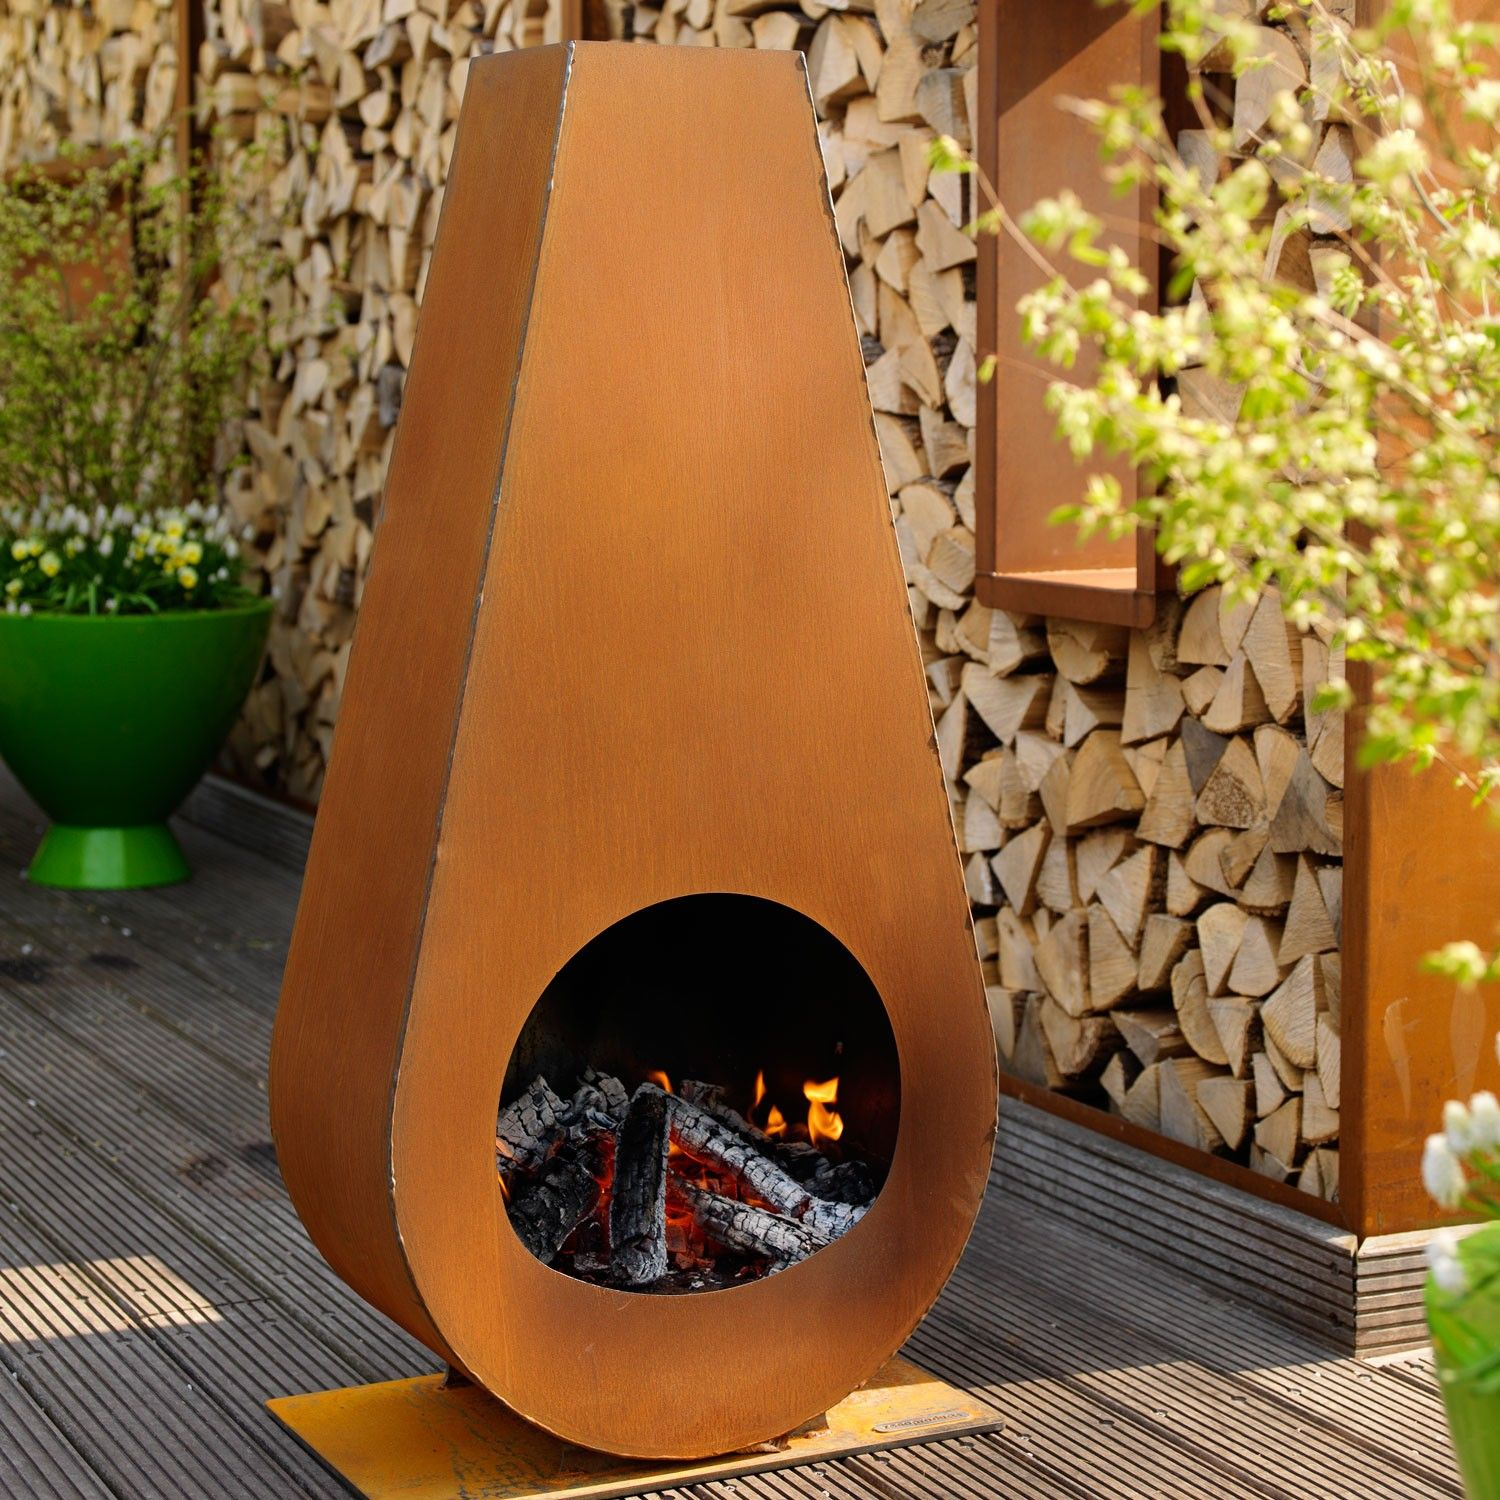 54b482a7d1d84d2393b423efe2a140ae Top Result 50 Awesome Steel Outdoor Fireplace Gallery 2018 Hiw6